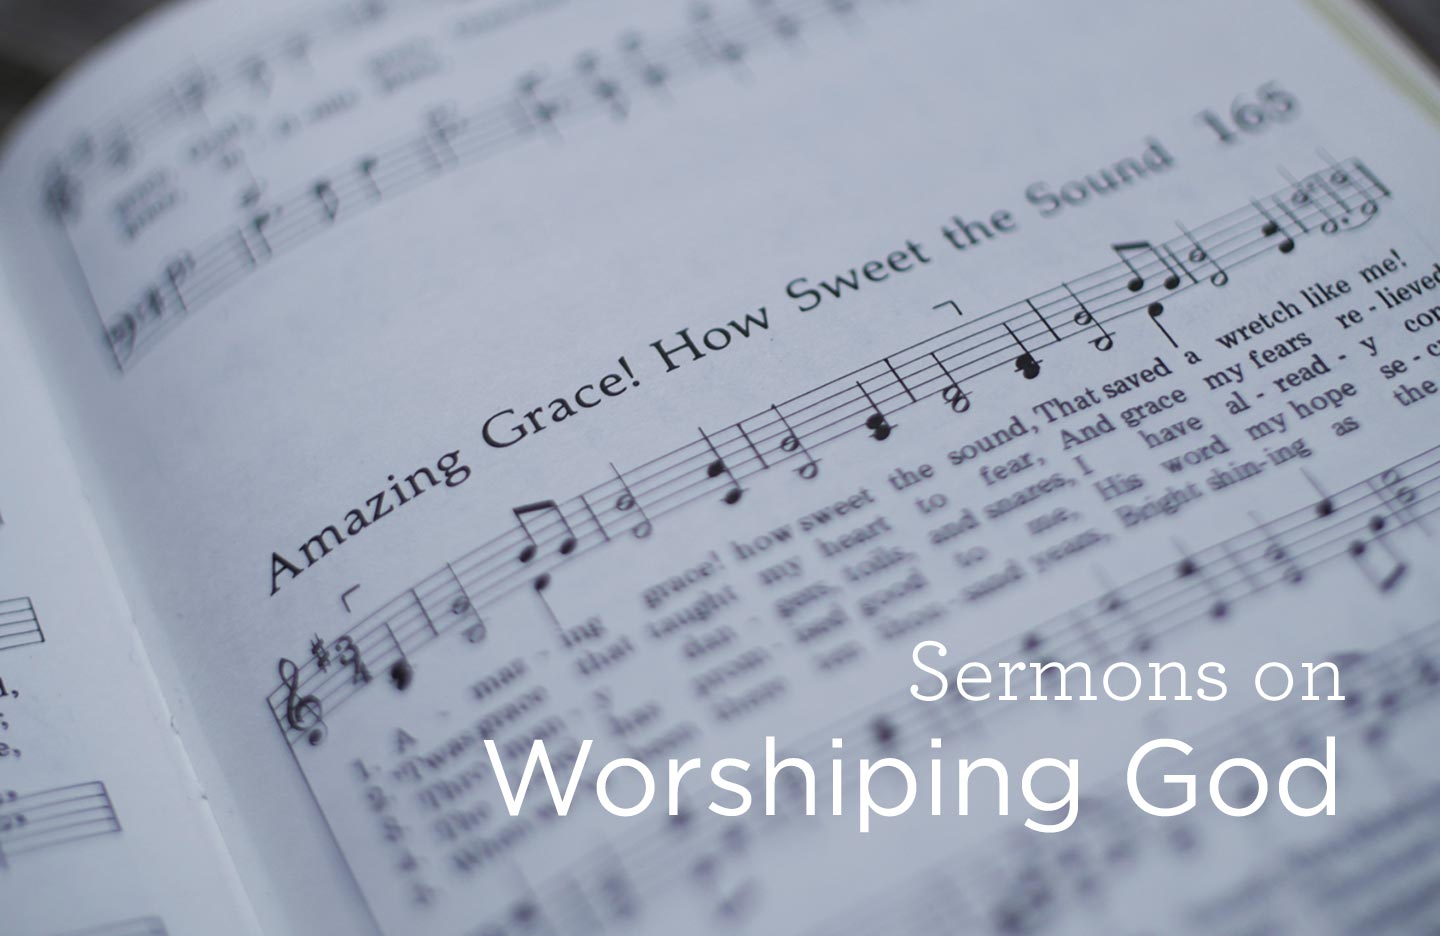 thumbnail image for Sermons on Worshiping God